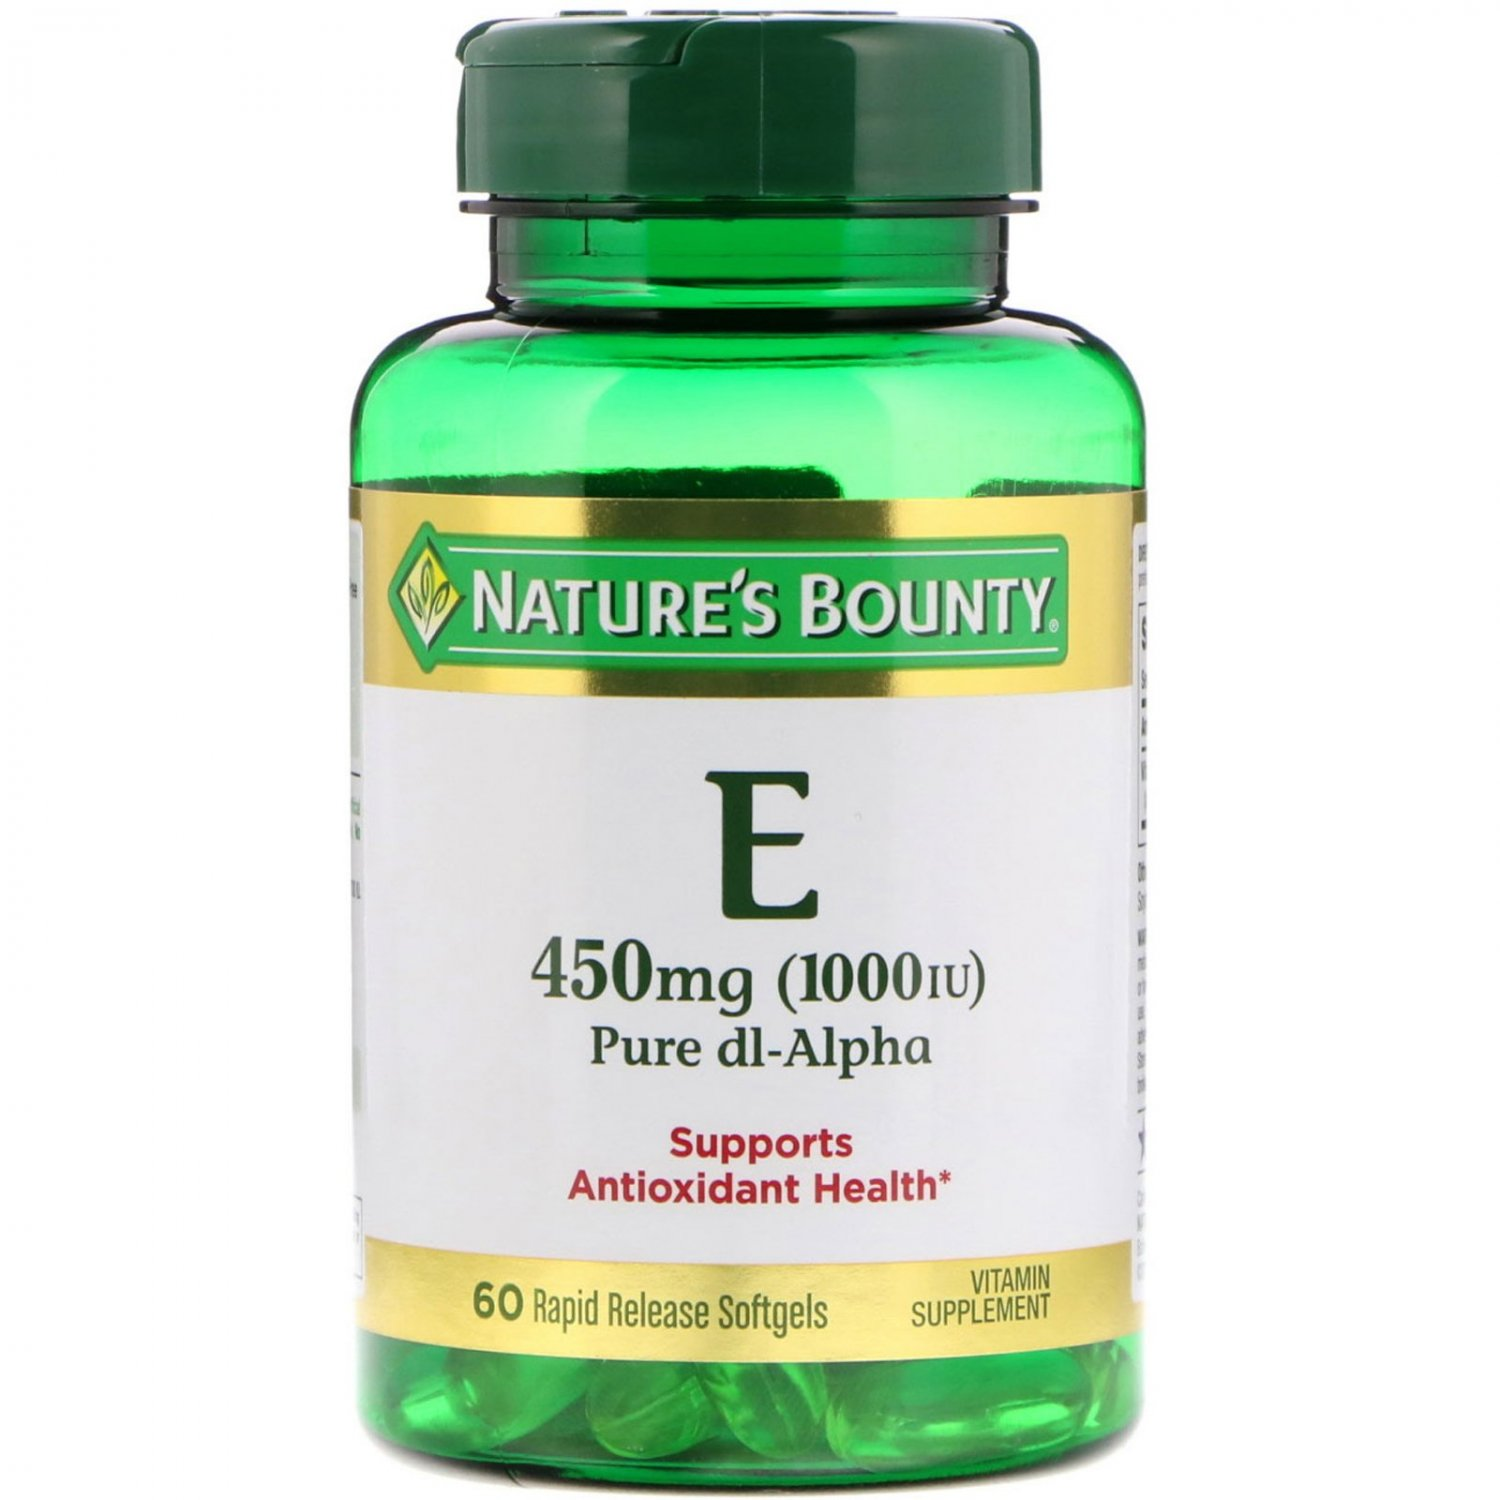 Nature's Bounty, Vitamin E, Pure Dl-Alpha, 450 mg (1000 IU), 60 Rapid Release Softgels